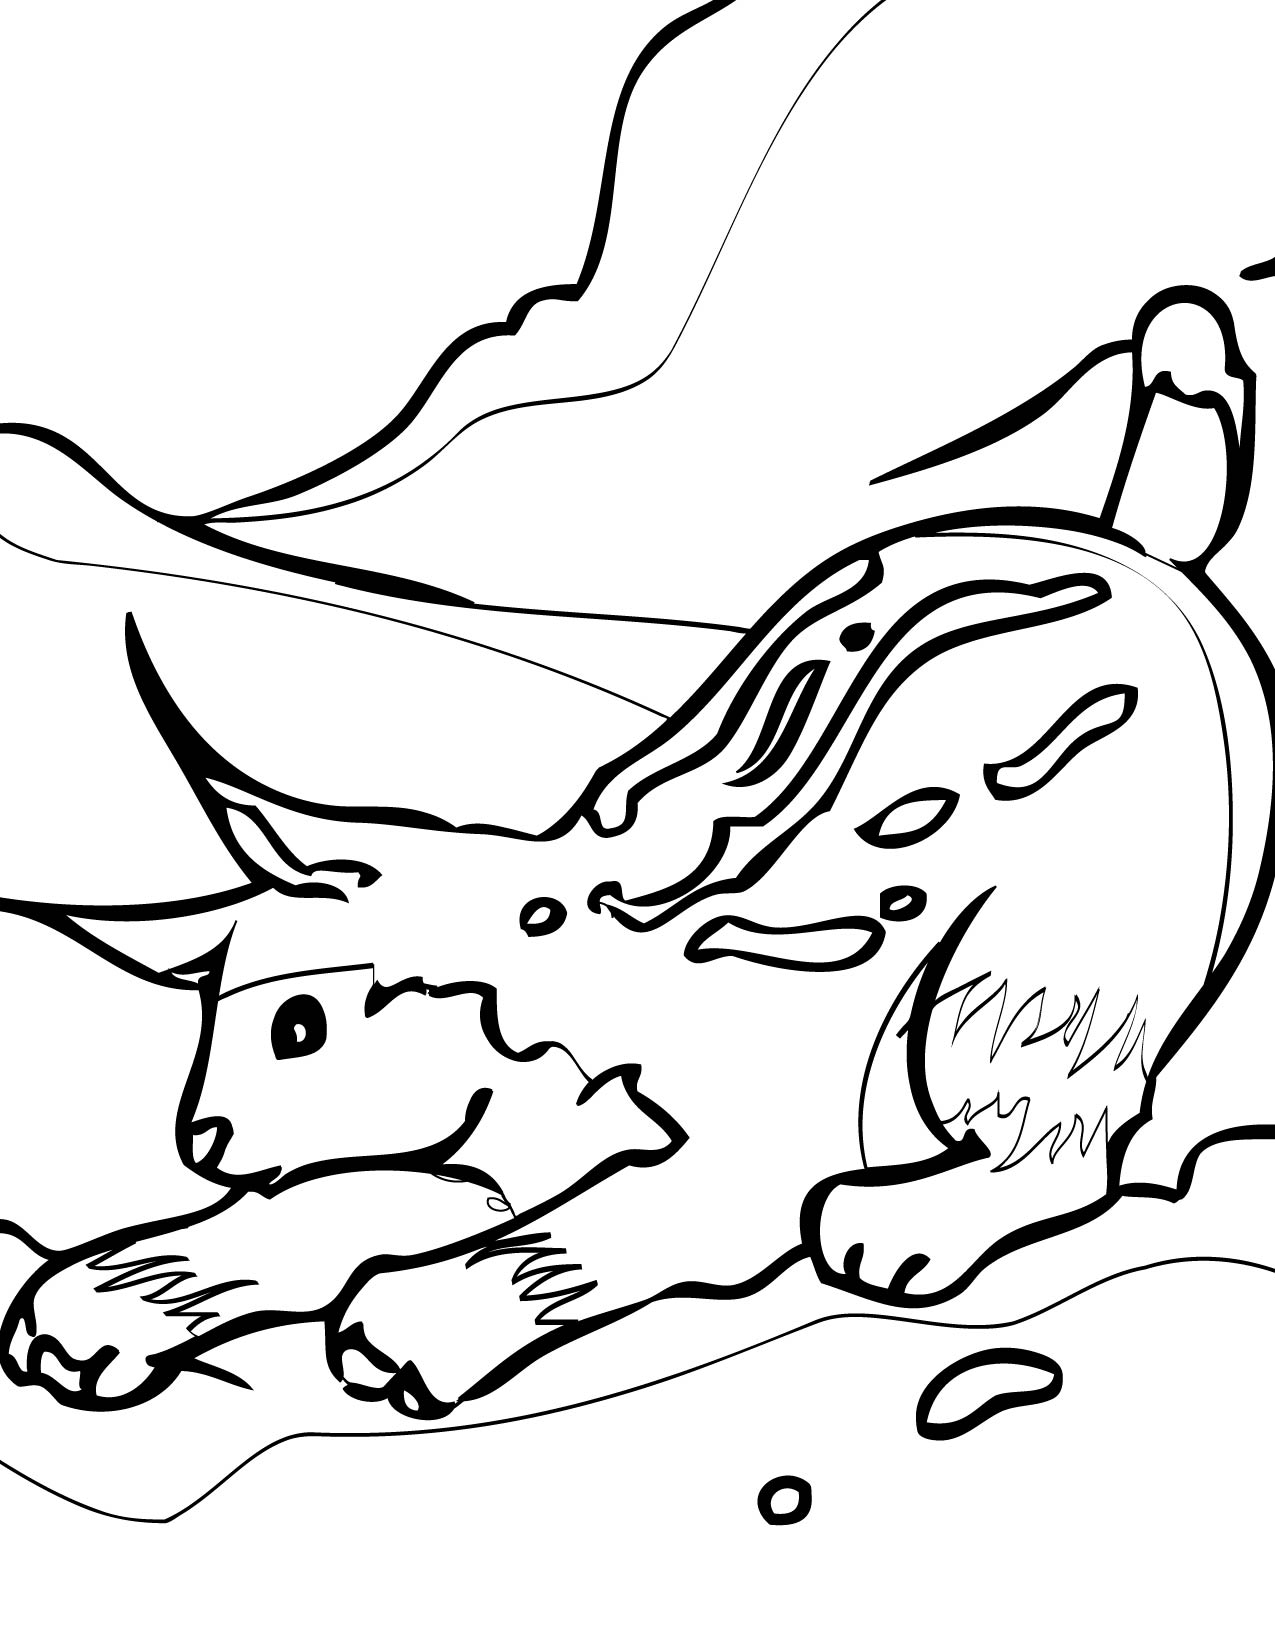 arctic animals coloring pages free printable arctic animals coloring pages coloring home arctic coloring animals pages